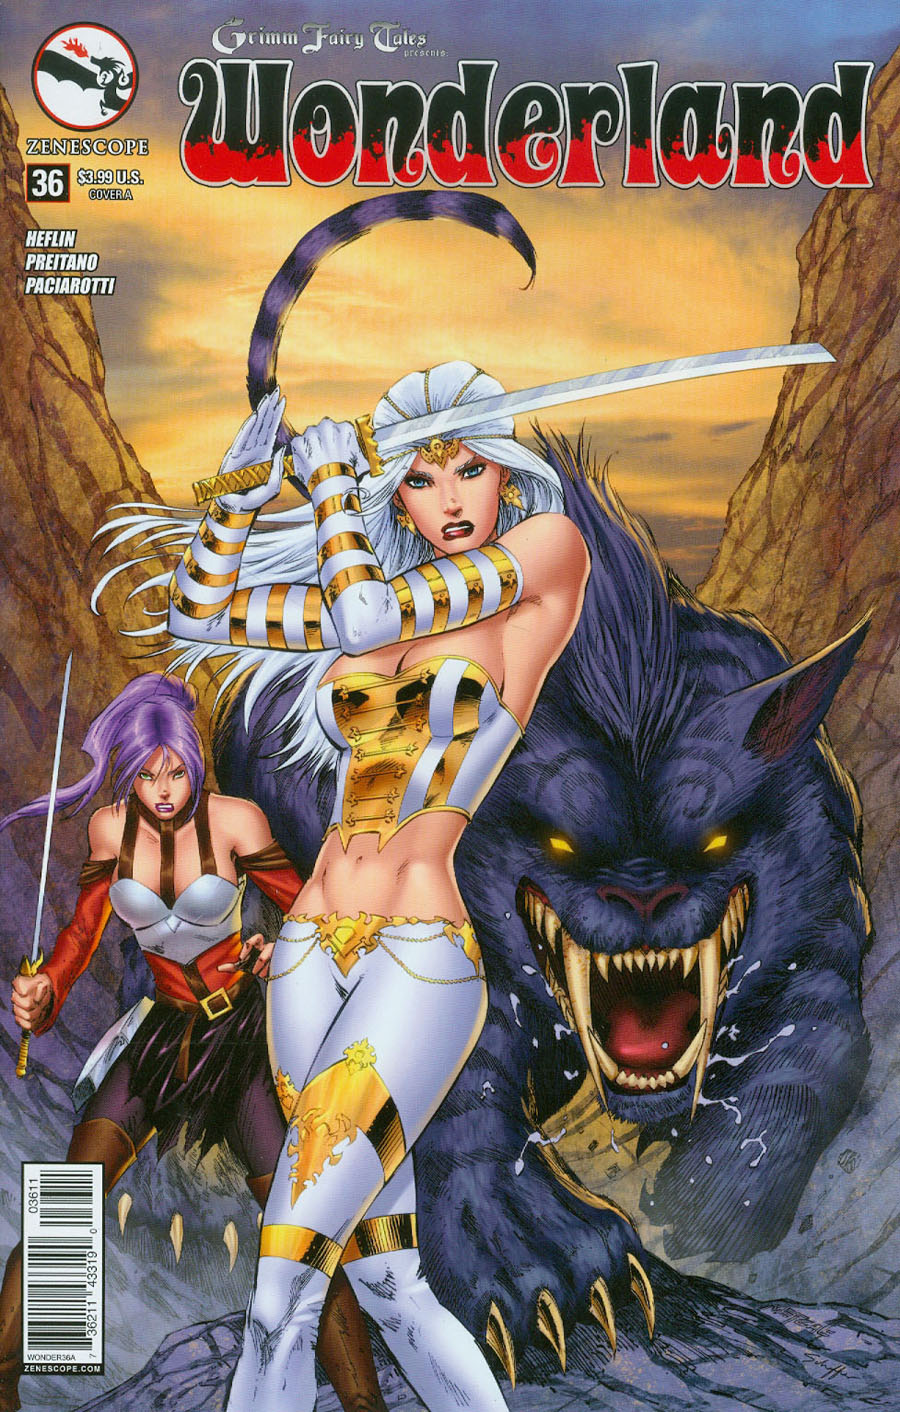 Grimm Fairy Tales Presents Wonderland Vol 2 #36 Cover A Jason Metcalf